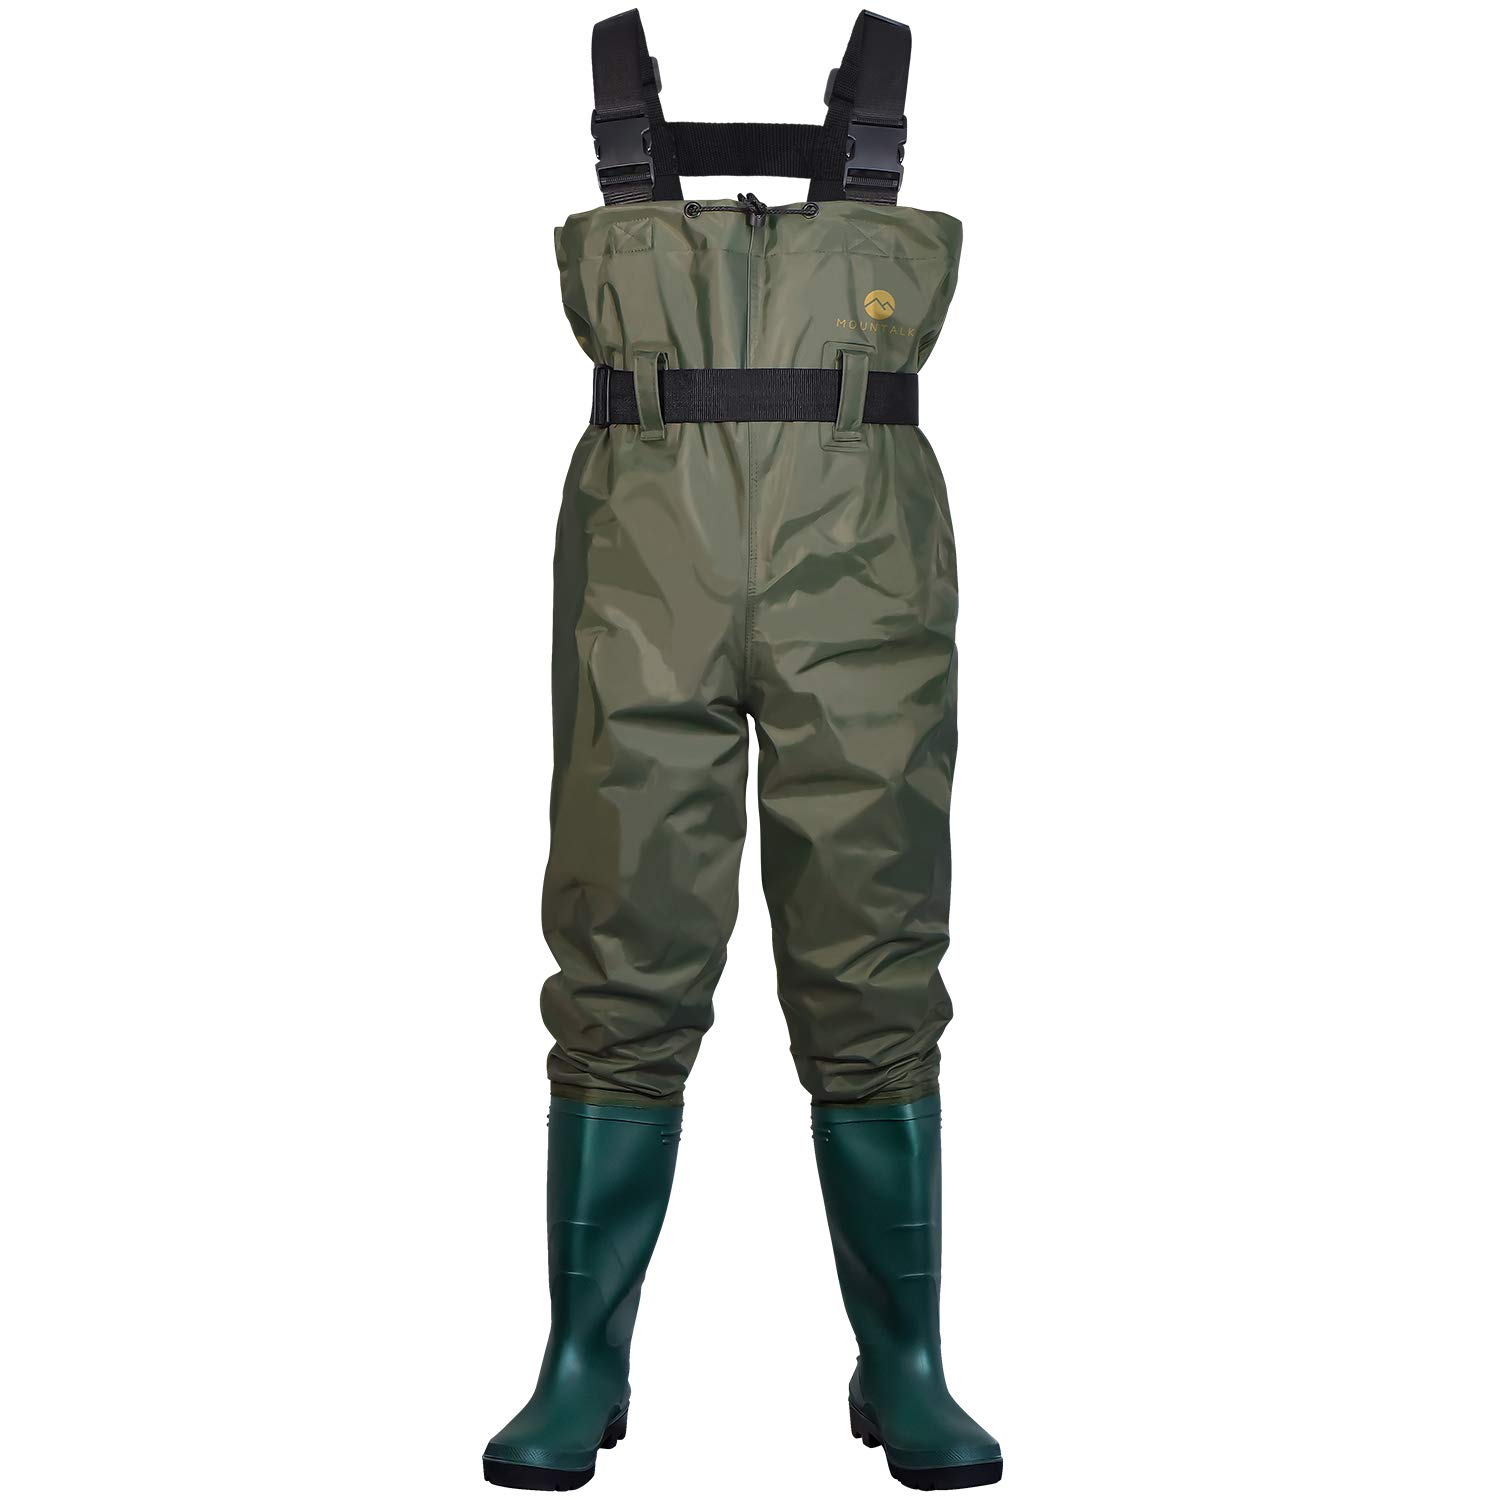 Mountalk High Chest Waders for Men with Boots, Womens Mens Youth Durable Waterproof Canvas Fly Fishing Waders with Boots – Also Use for Hunting, Waterworks